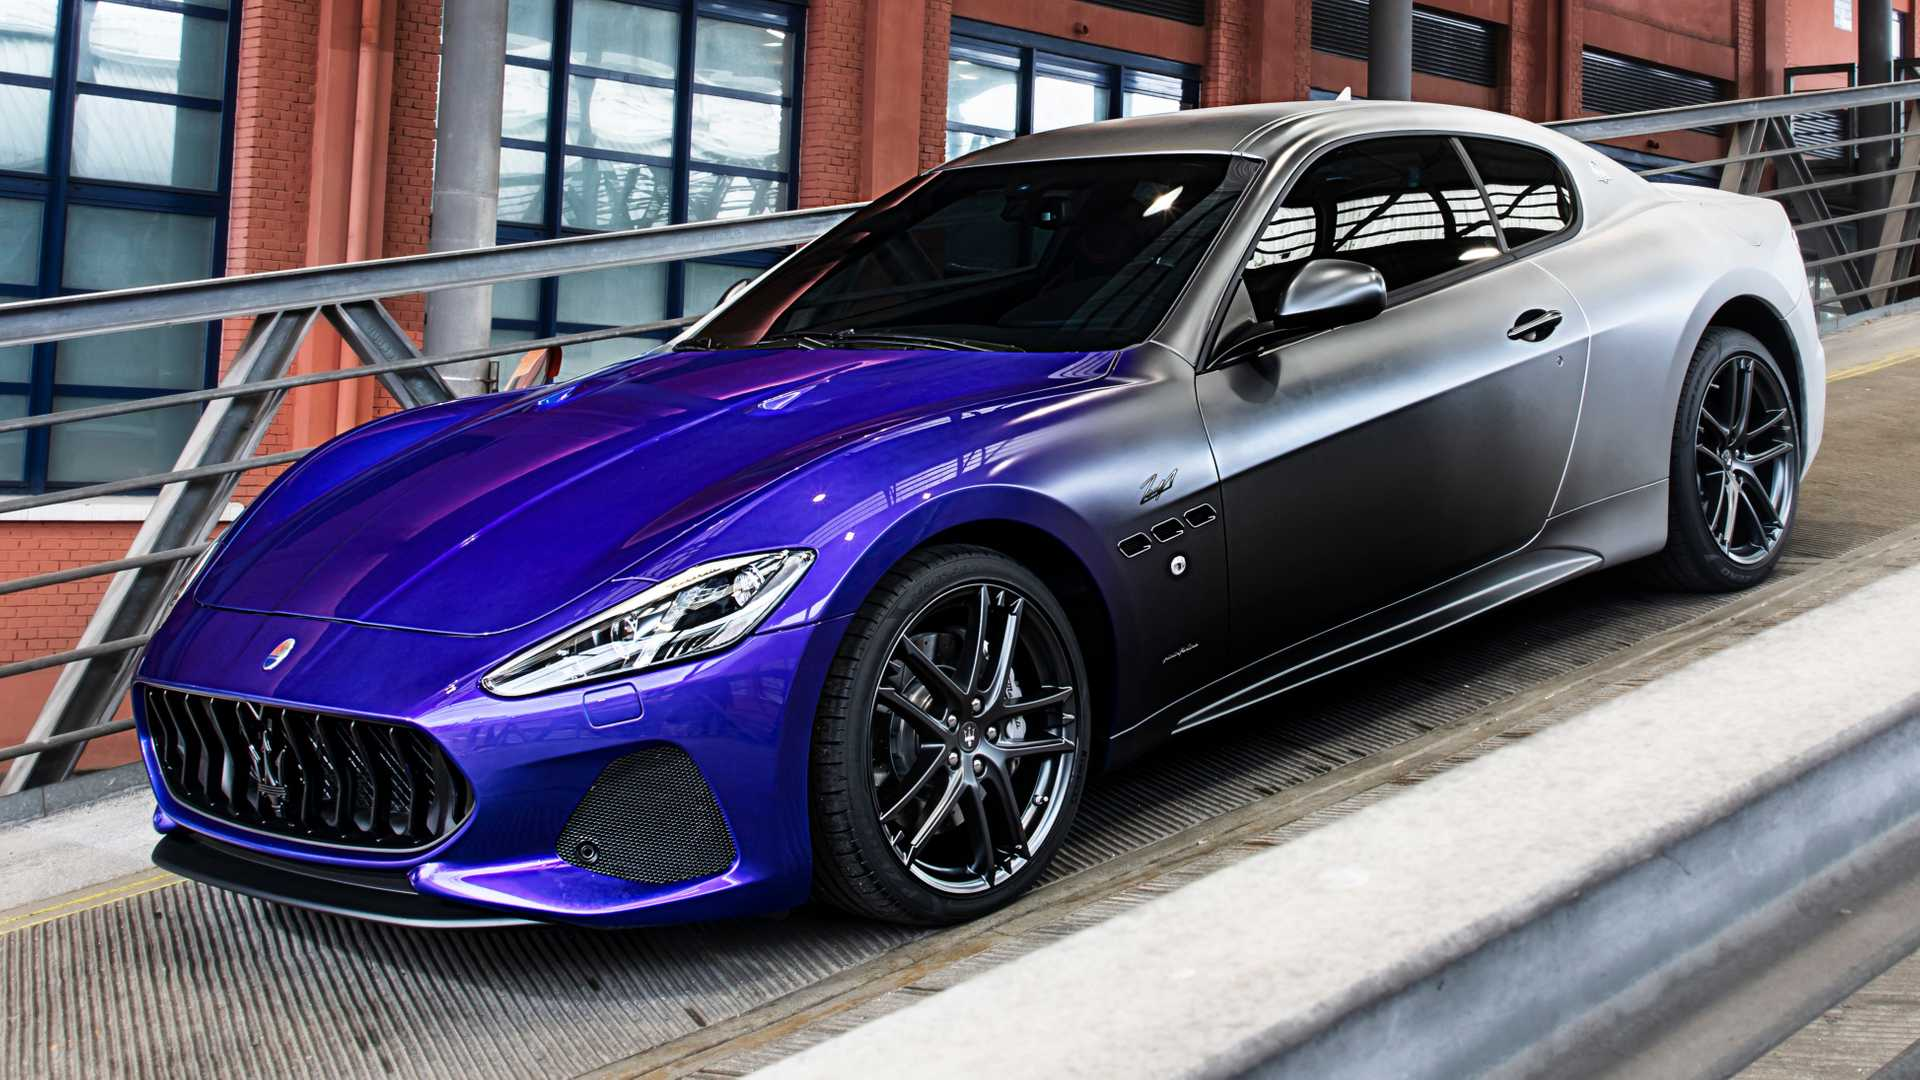 Maserati GranTurismo Production Ends With Colorful Final Model